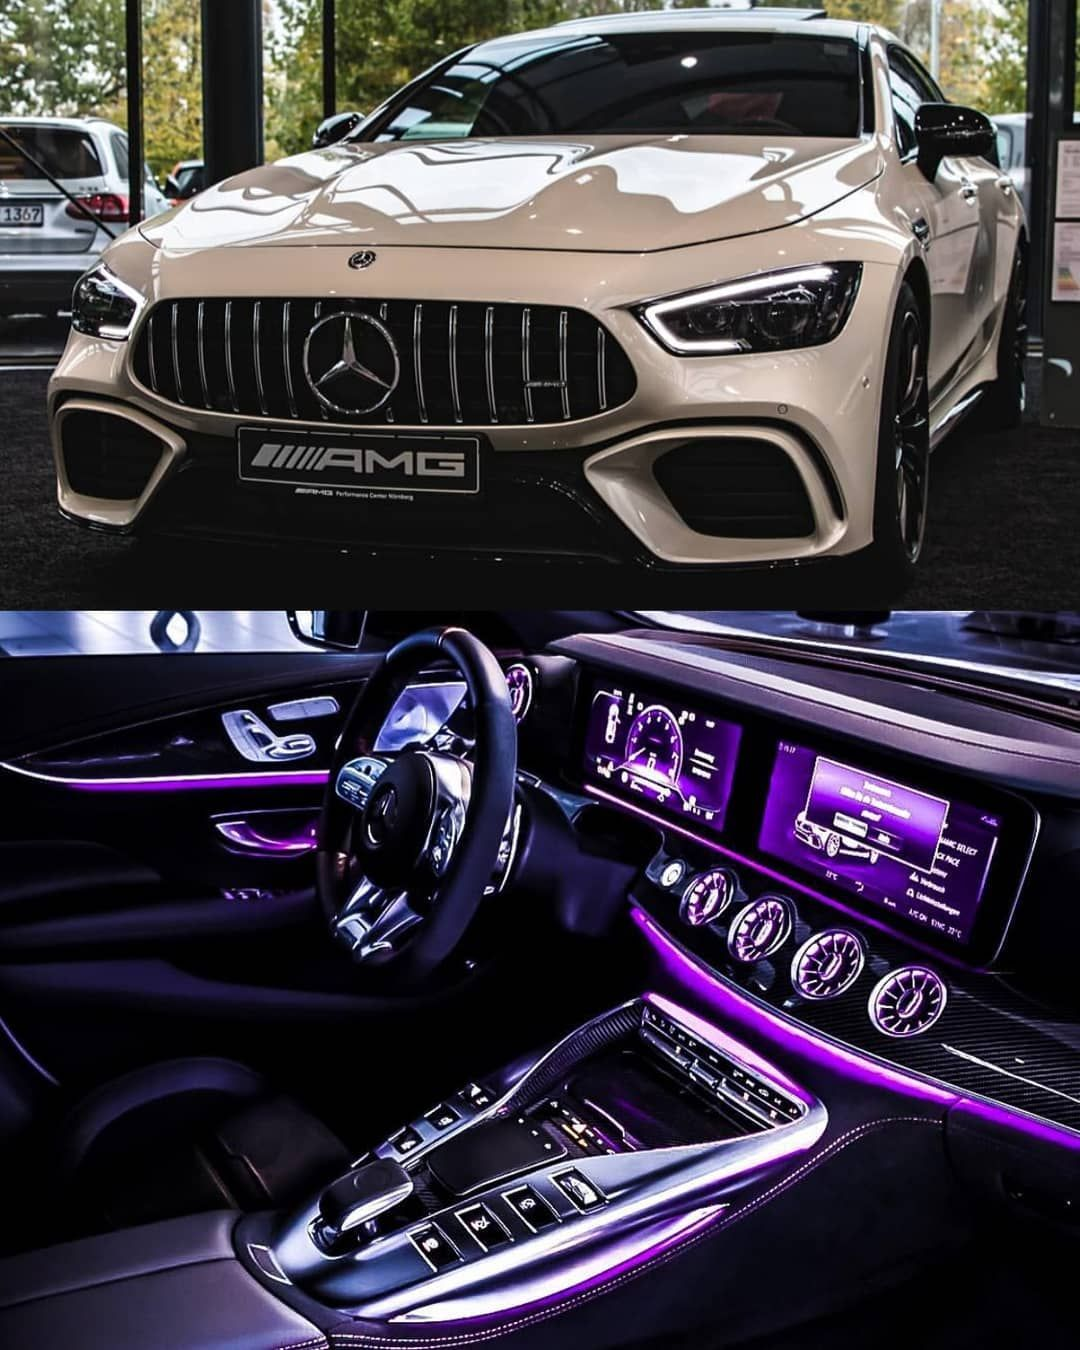 The New Mercedes Amg Gt 63 S 4matic Coupe 4 0 L V8 Biturbo 639 Hp